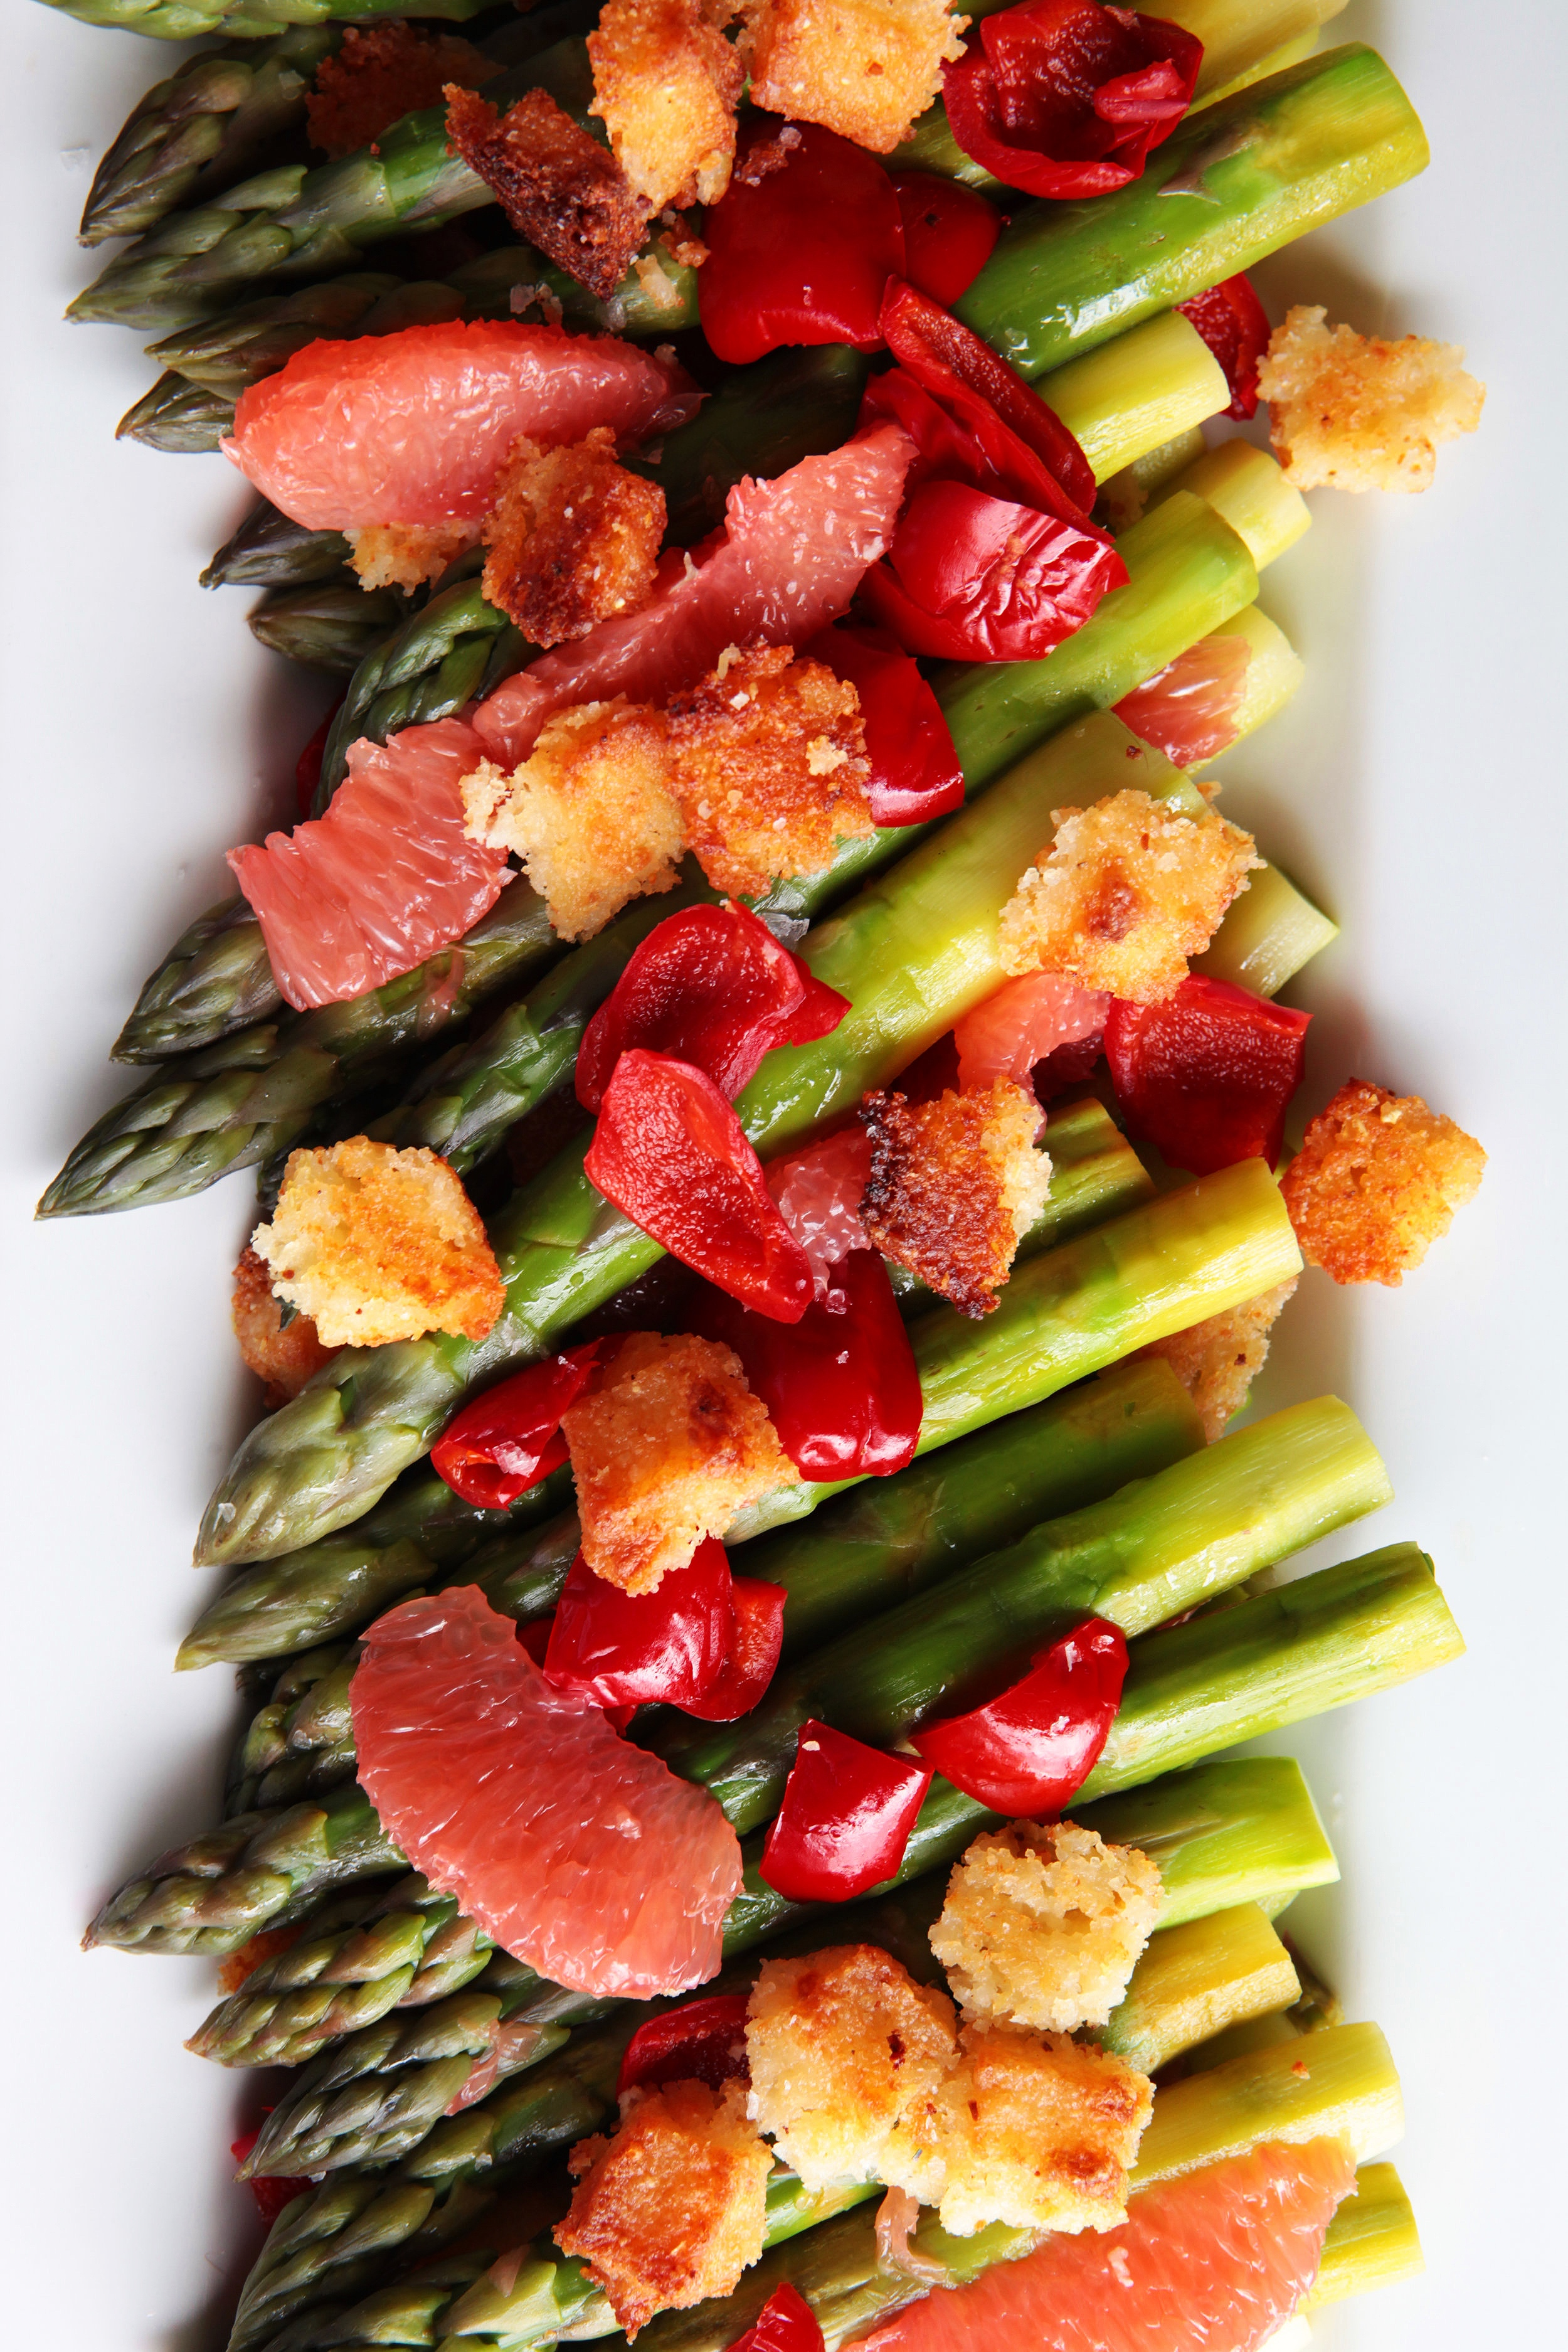 Asparagus salad with grapefruit, red peppers and croutons